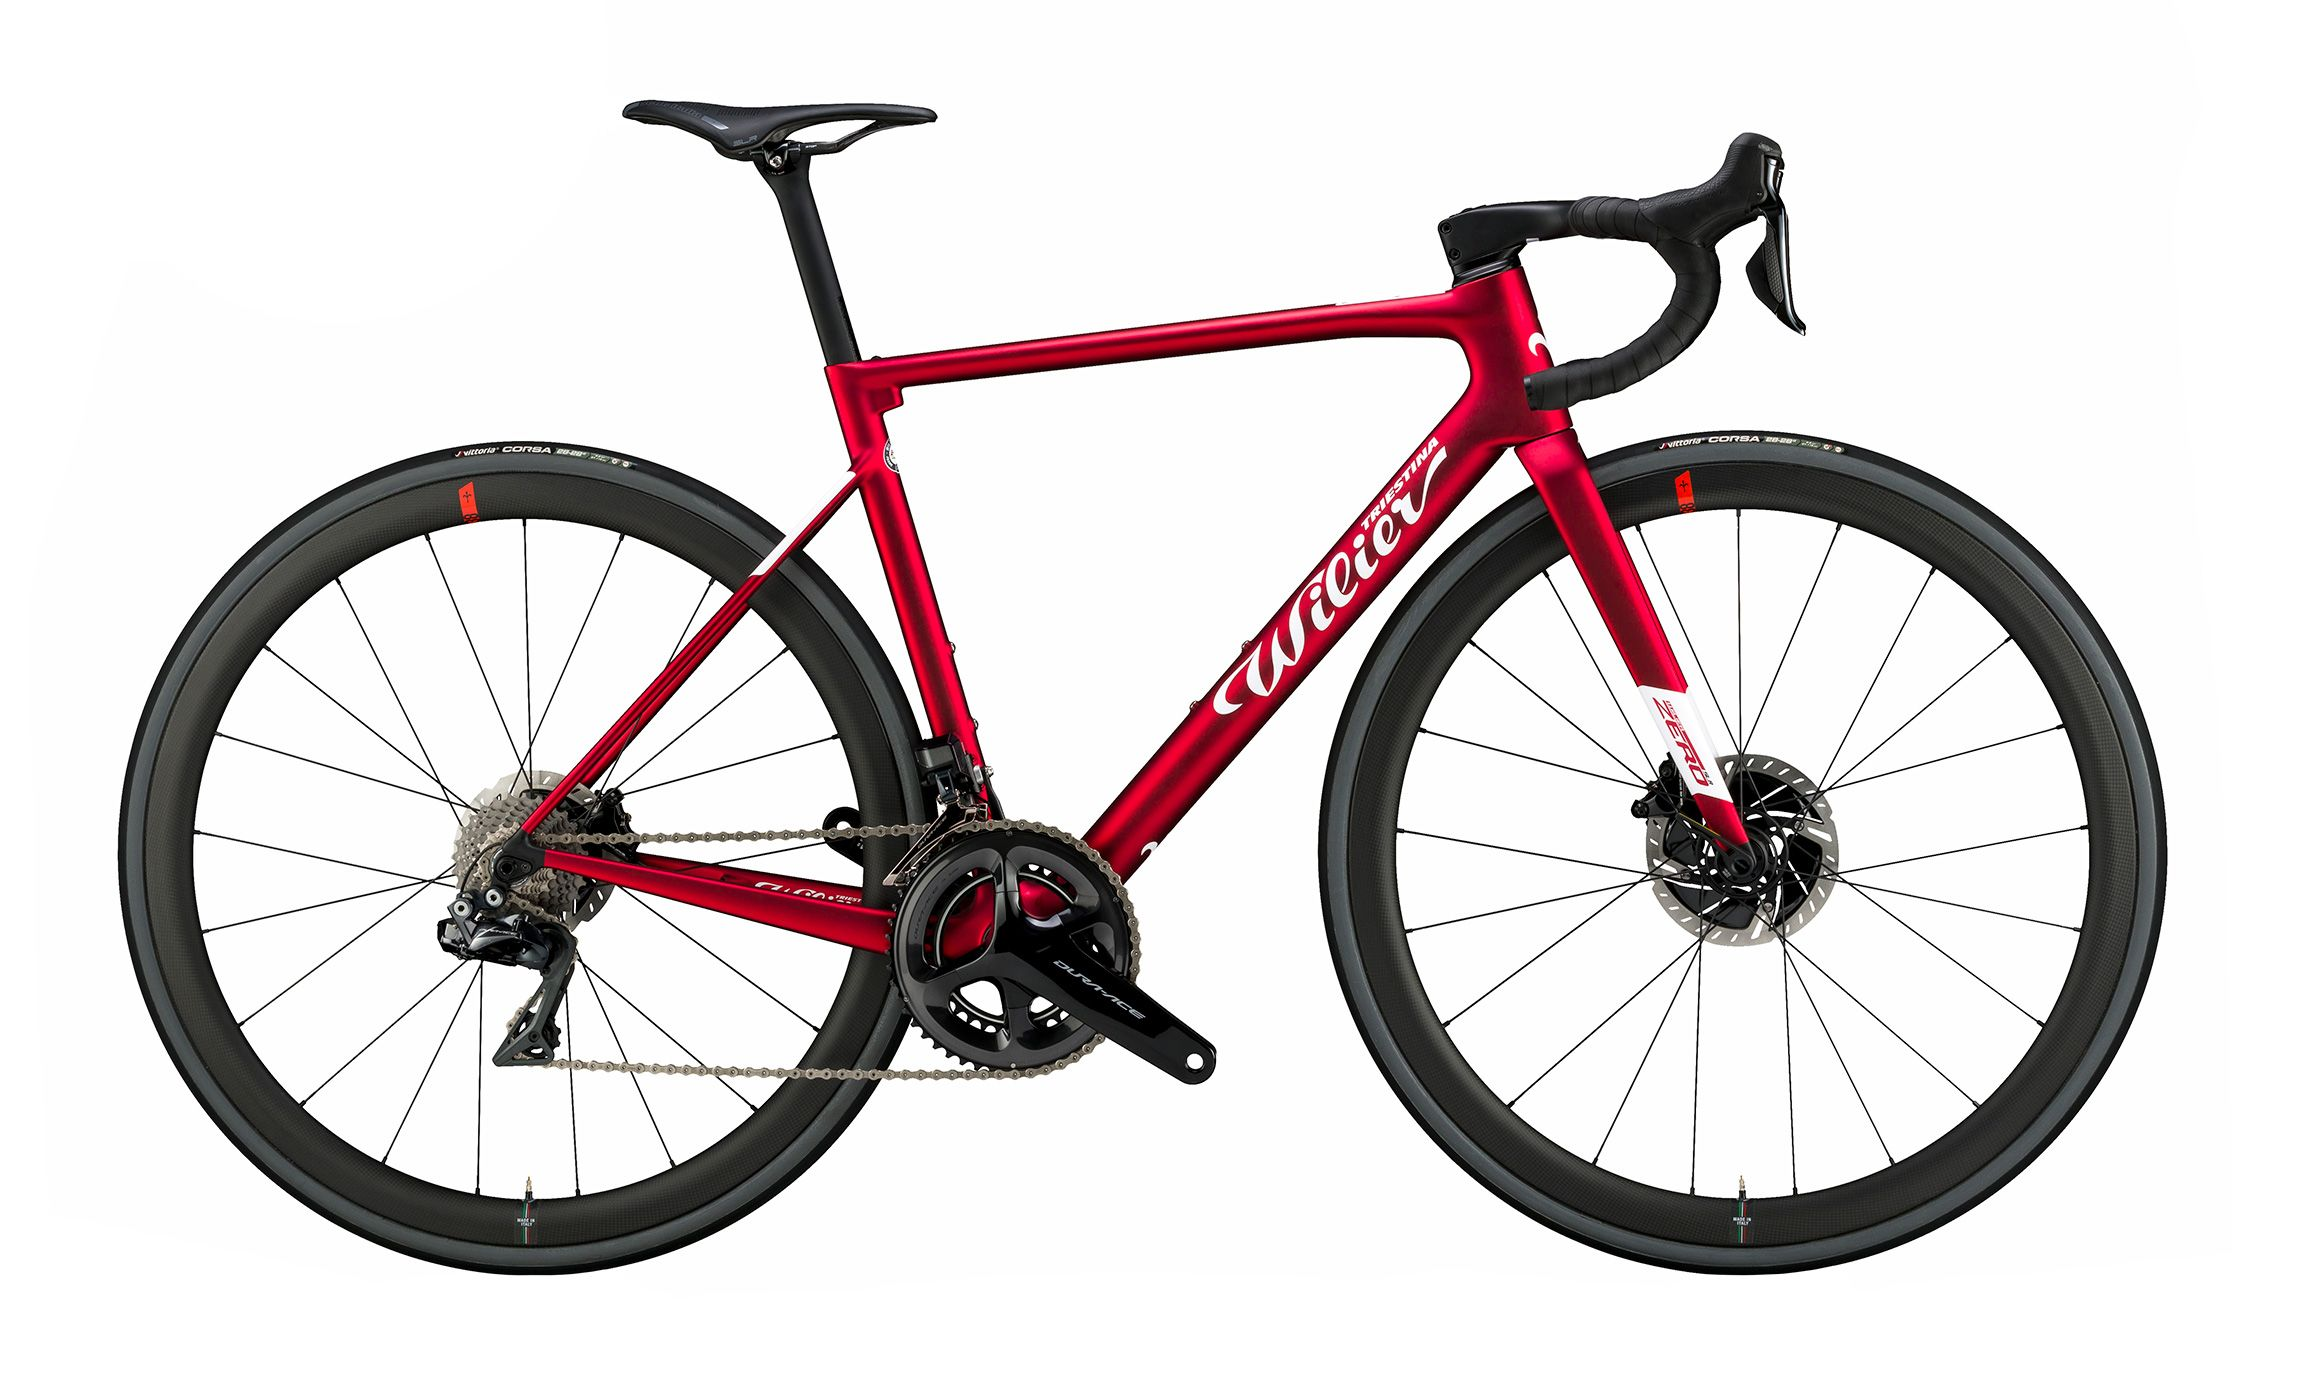 Wilier's New Zero SLR Is One of the Best Road Bikes You Can Buy